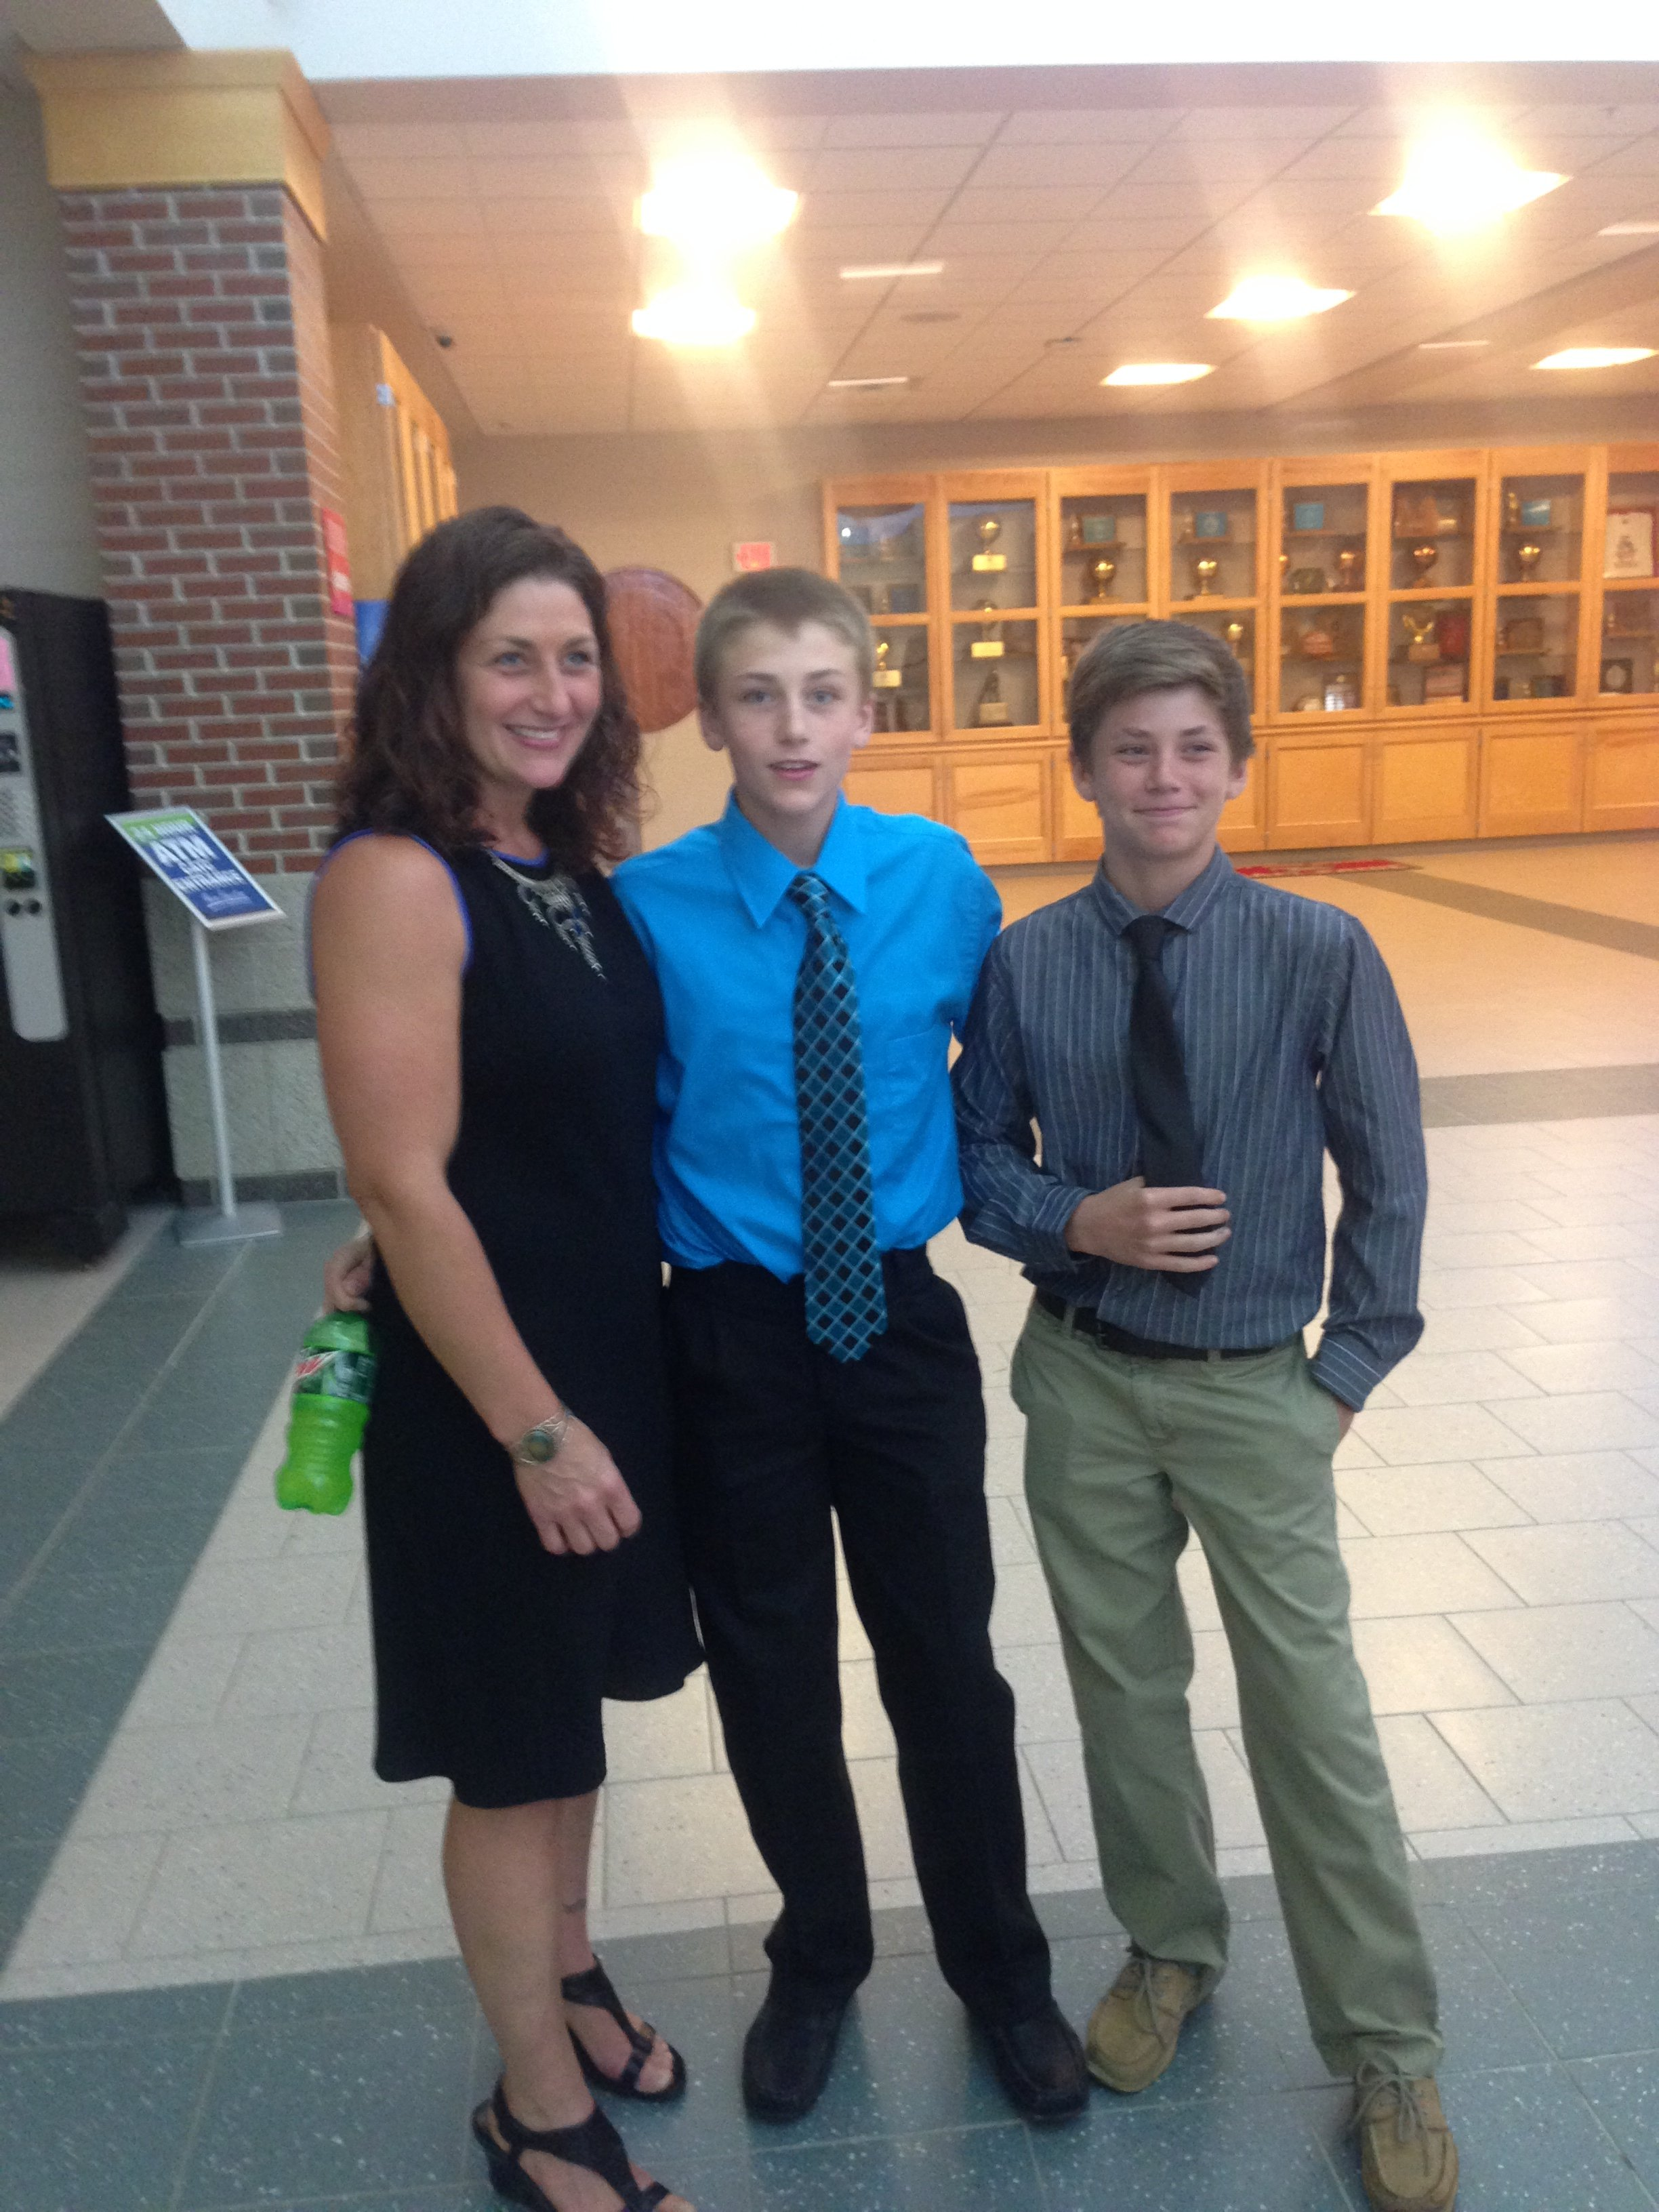 My son Anthony in blue, 8th grade graduation, and my younger son Jacob, both very helpful with some guided trip